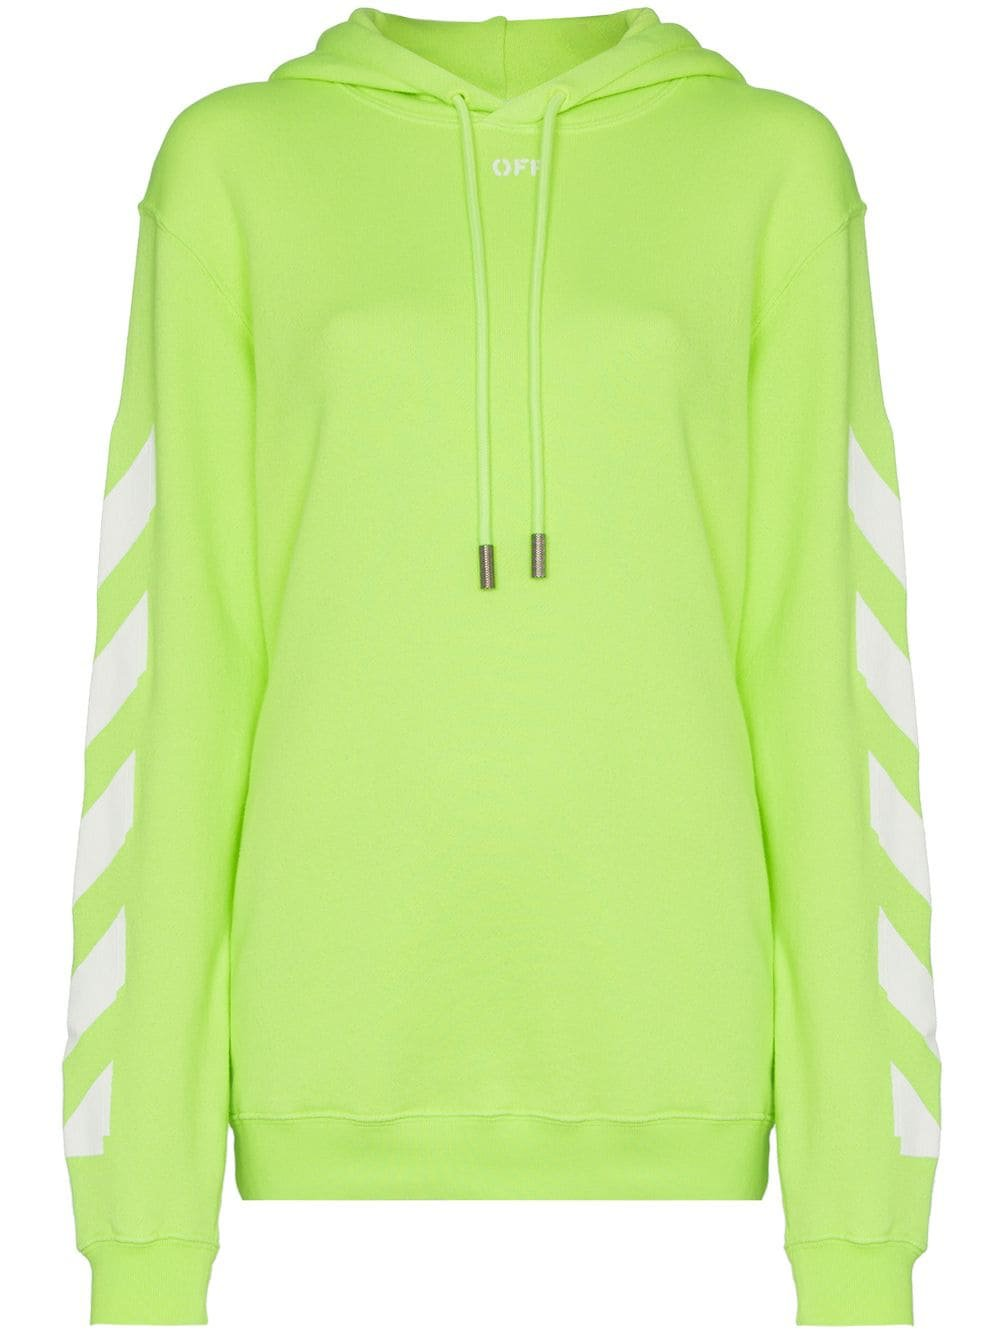 Off-White hoodie